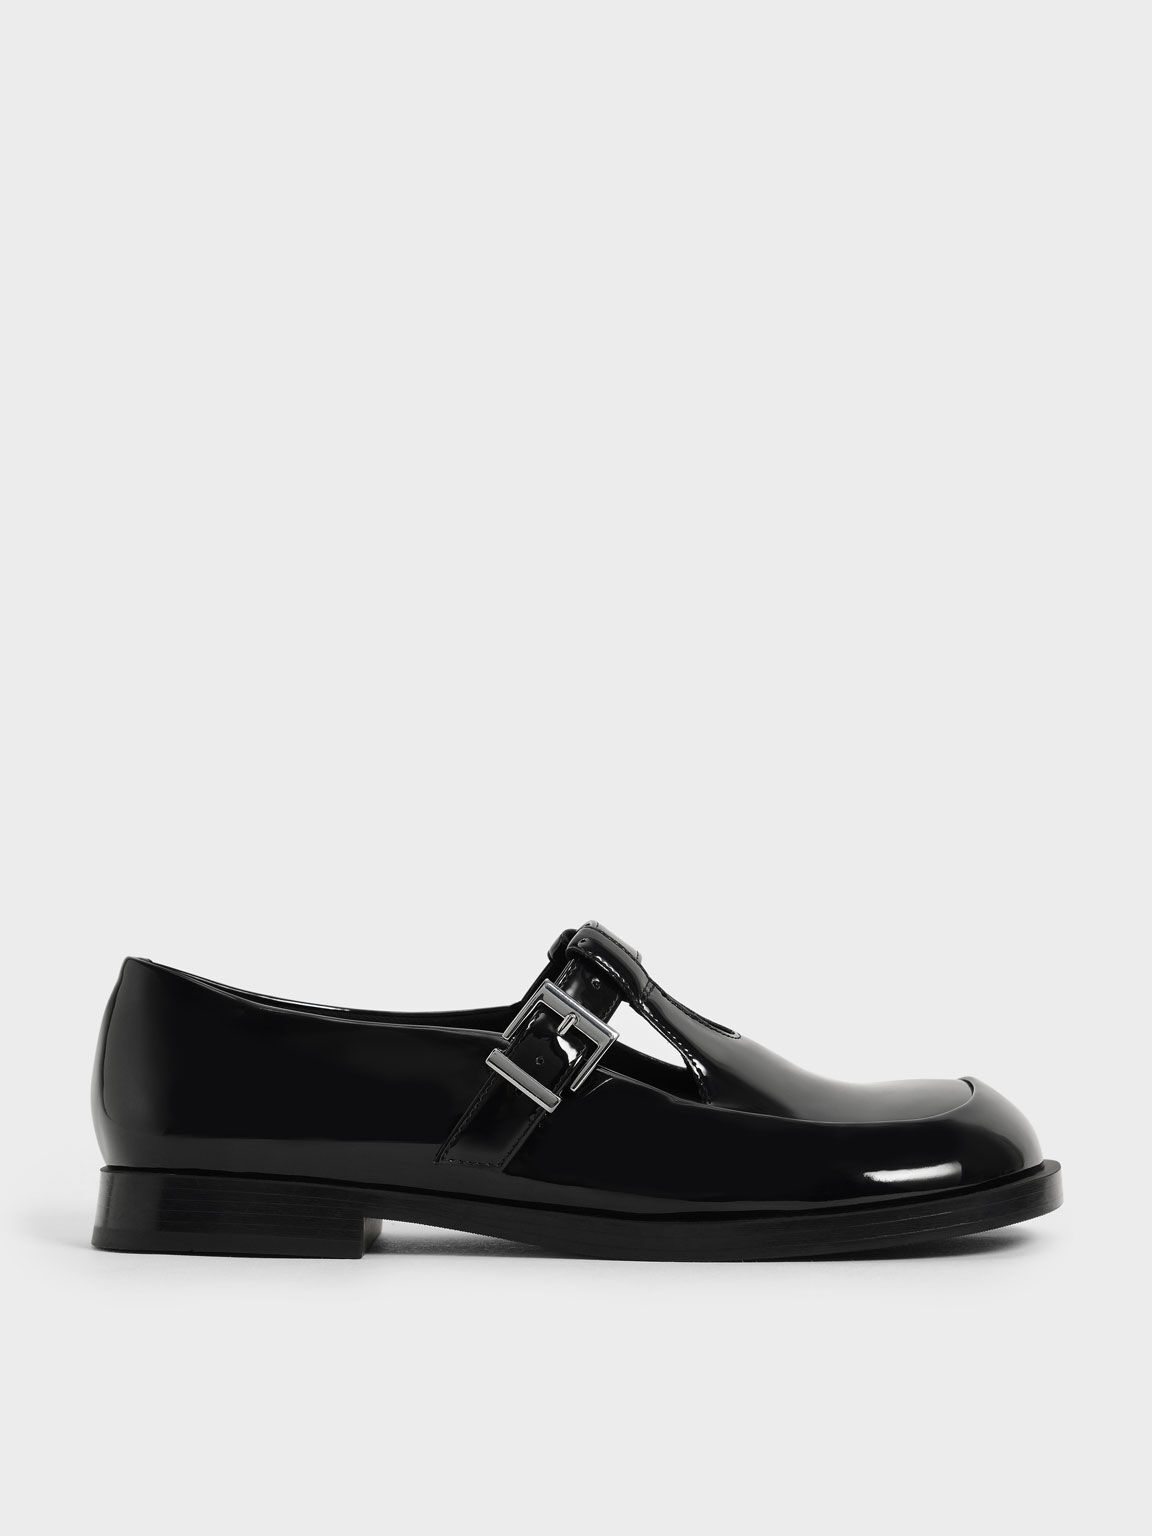 Patent Mary Jane Buckle Loafers, Black, hi-res